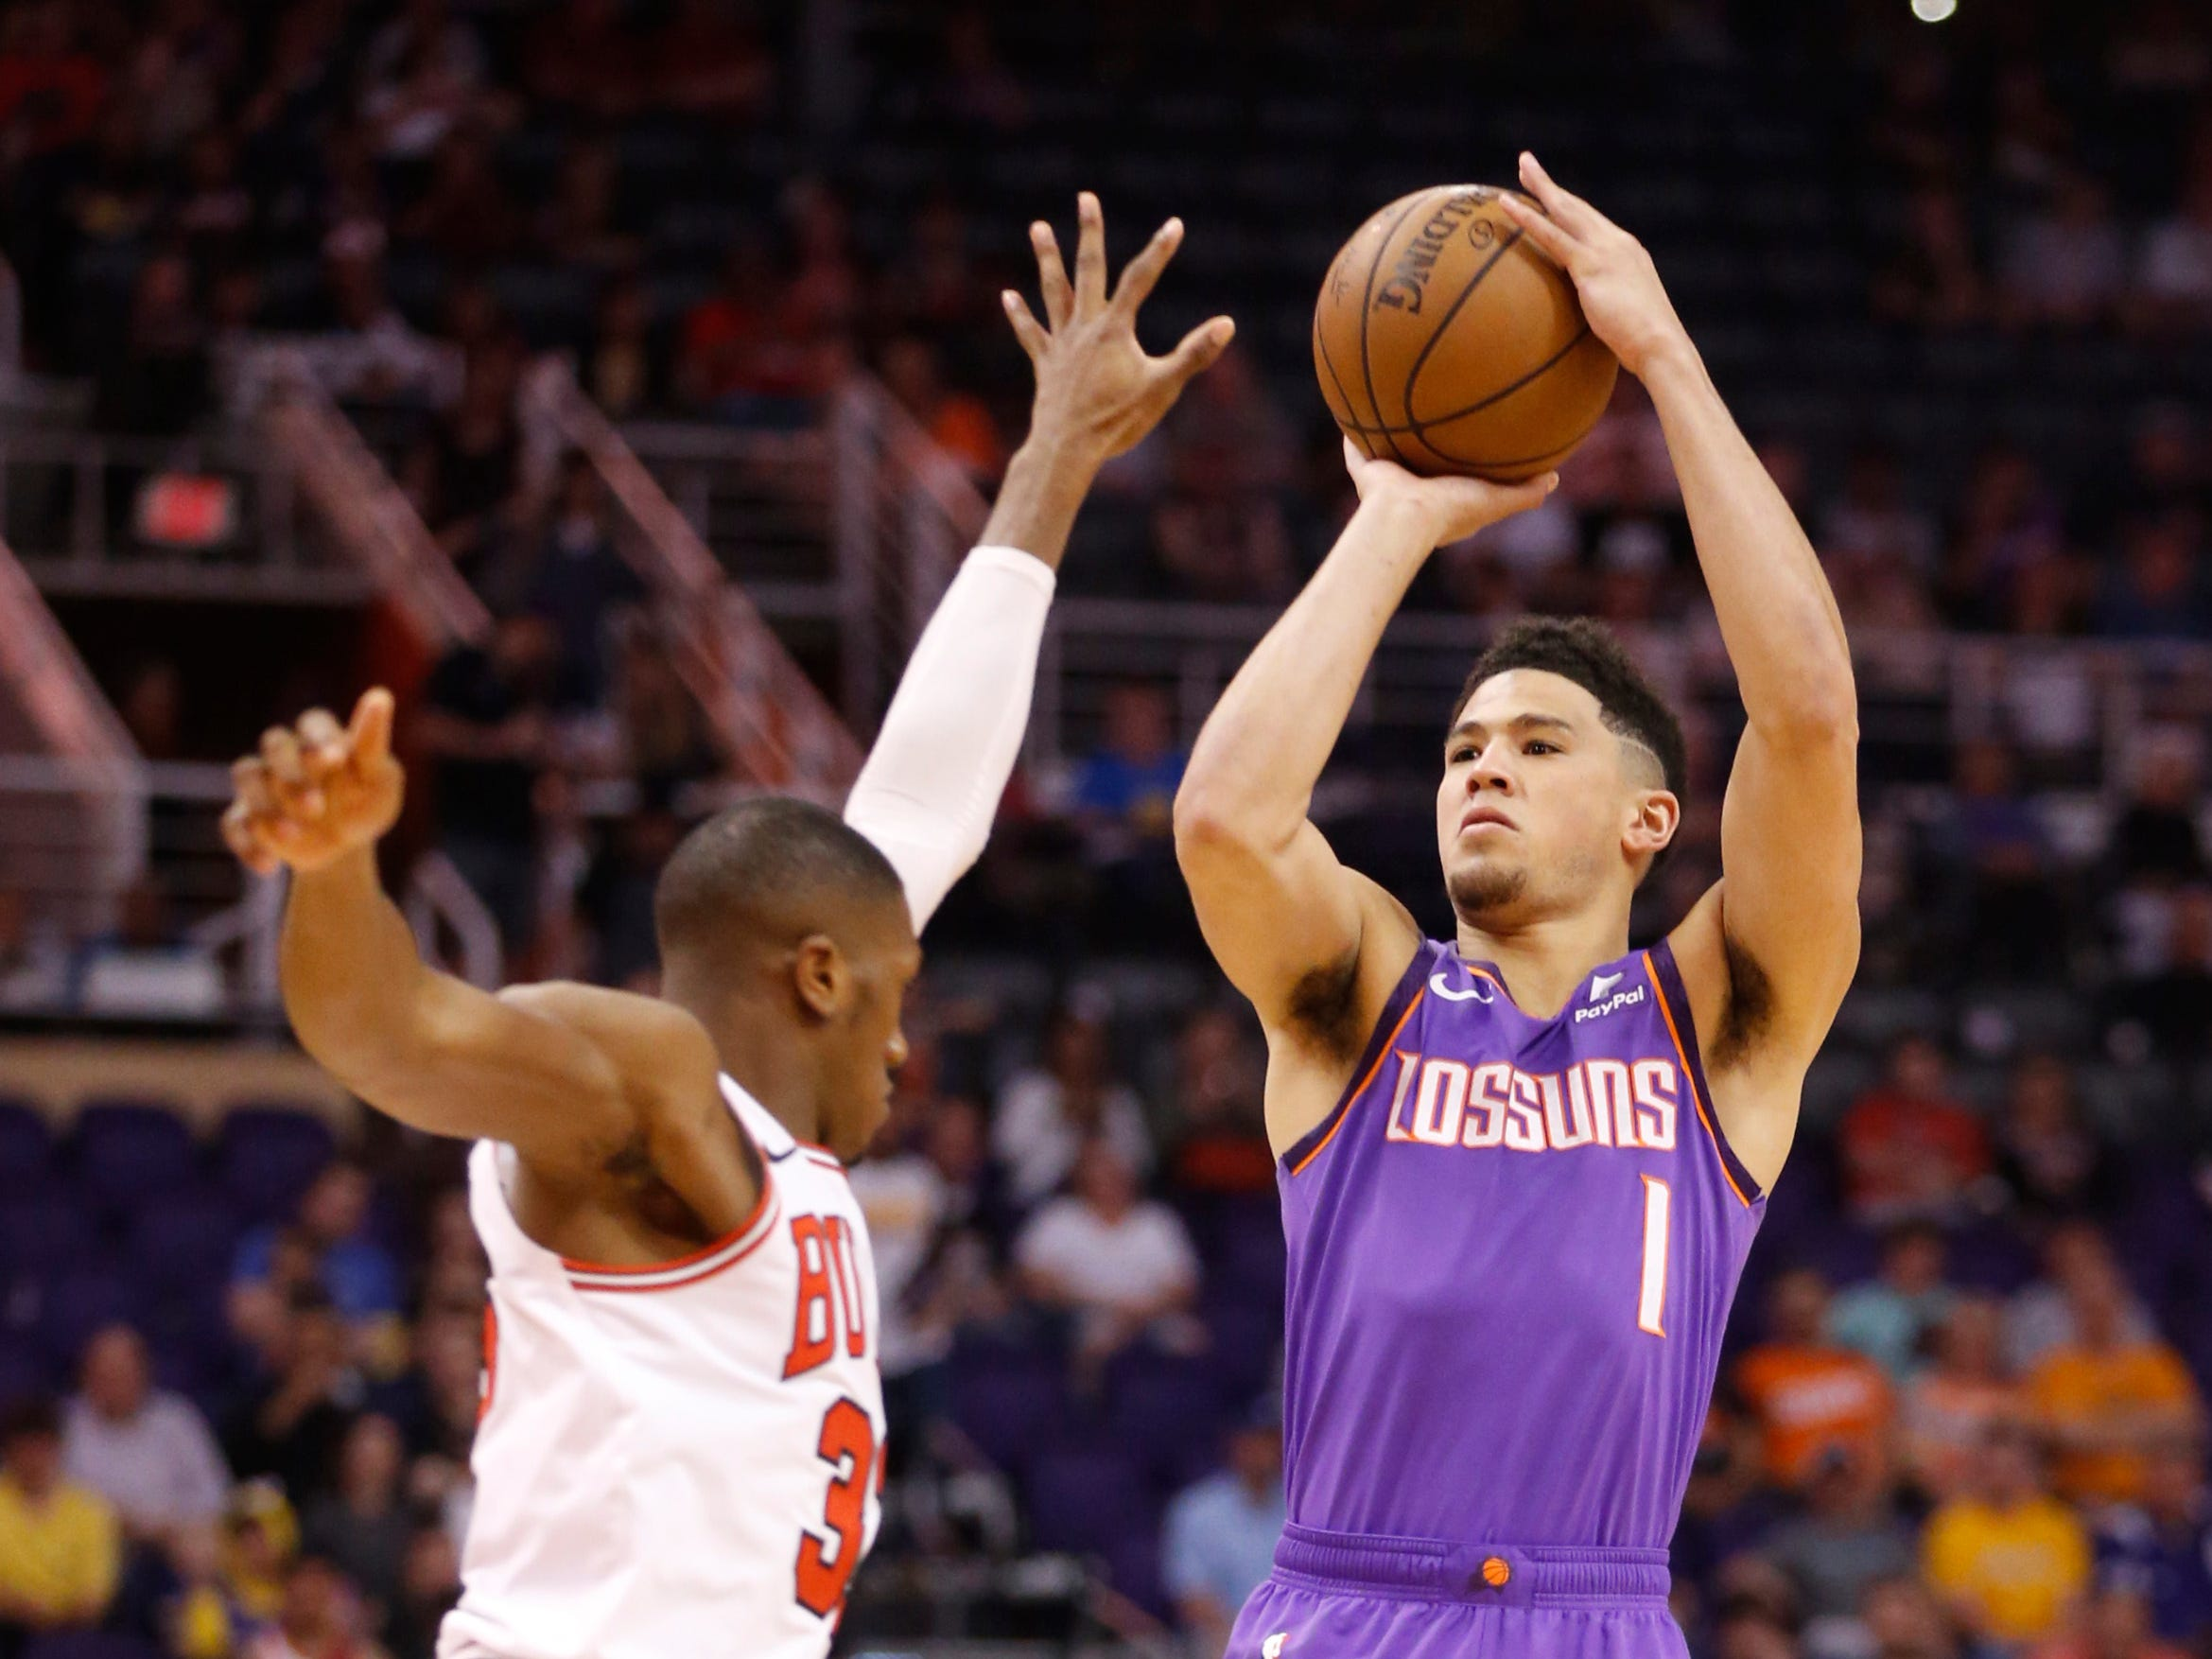 Suns' Devin Booker (1) shoots against Bulls' Kris Dunn (32) during the first half at Talking Stick Resort Arena in Phoenix, Ariz. on March 18, 2019.